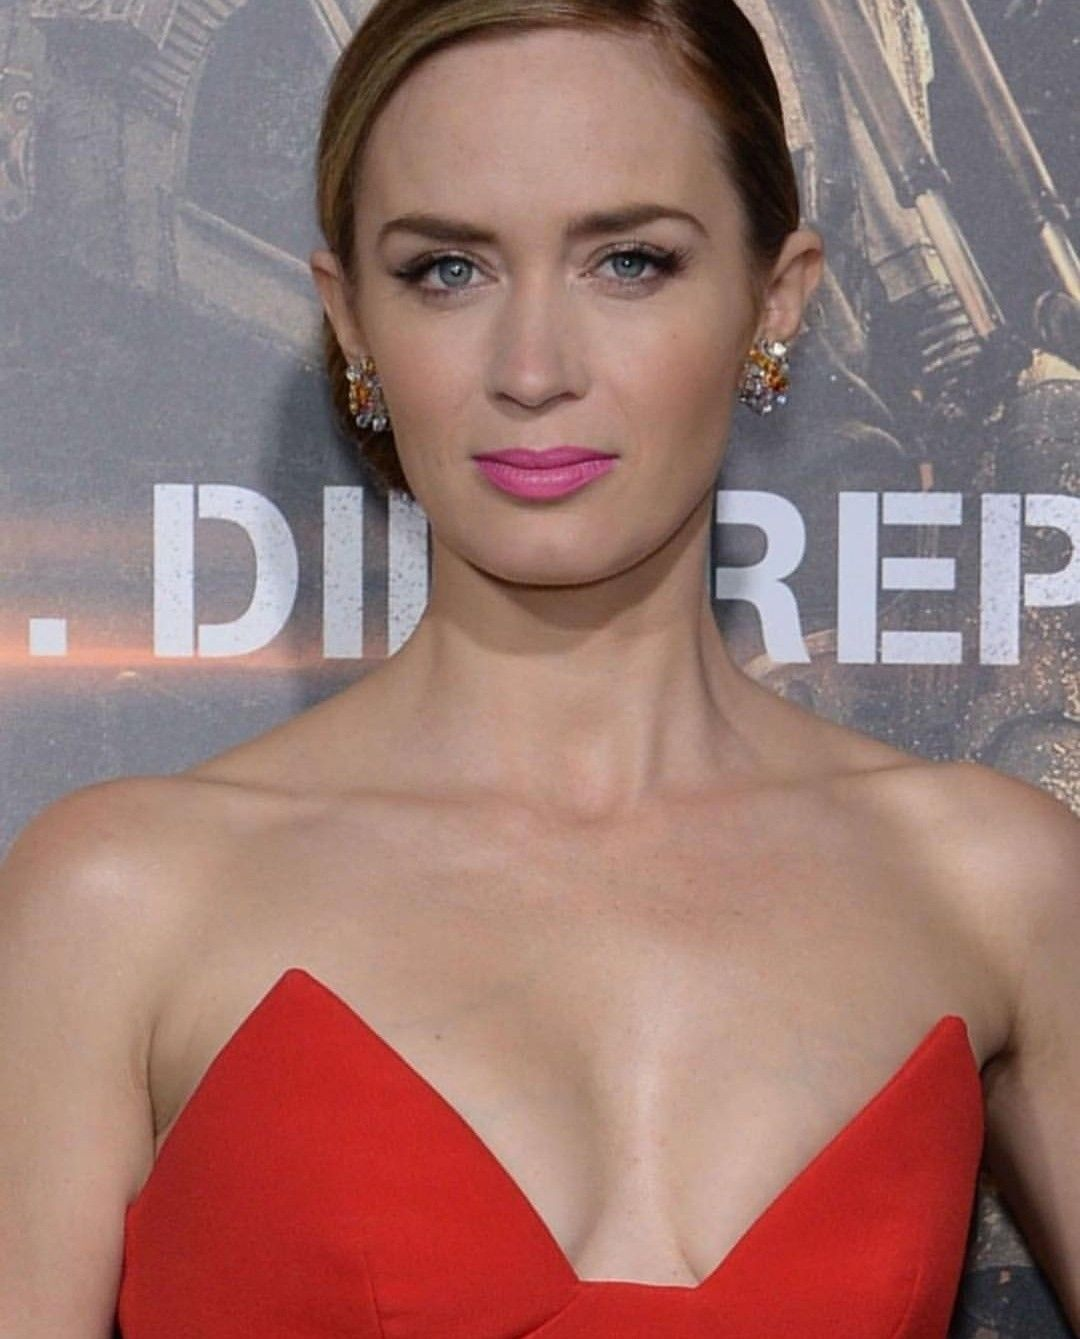 Emily Blunt (born 1983 (naturalized American citizen) nudes (47 fotos), photos Sideboobs, Snapchat, in bikini 2018